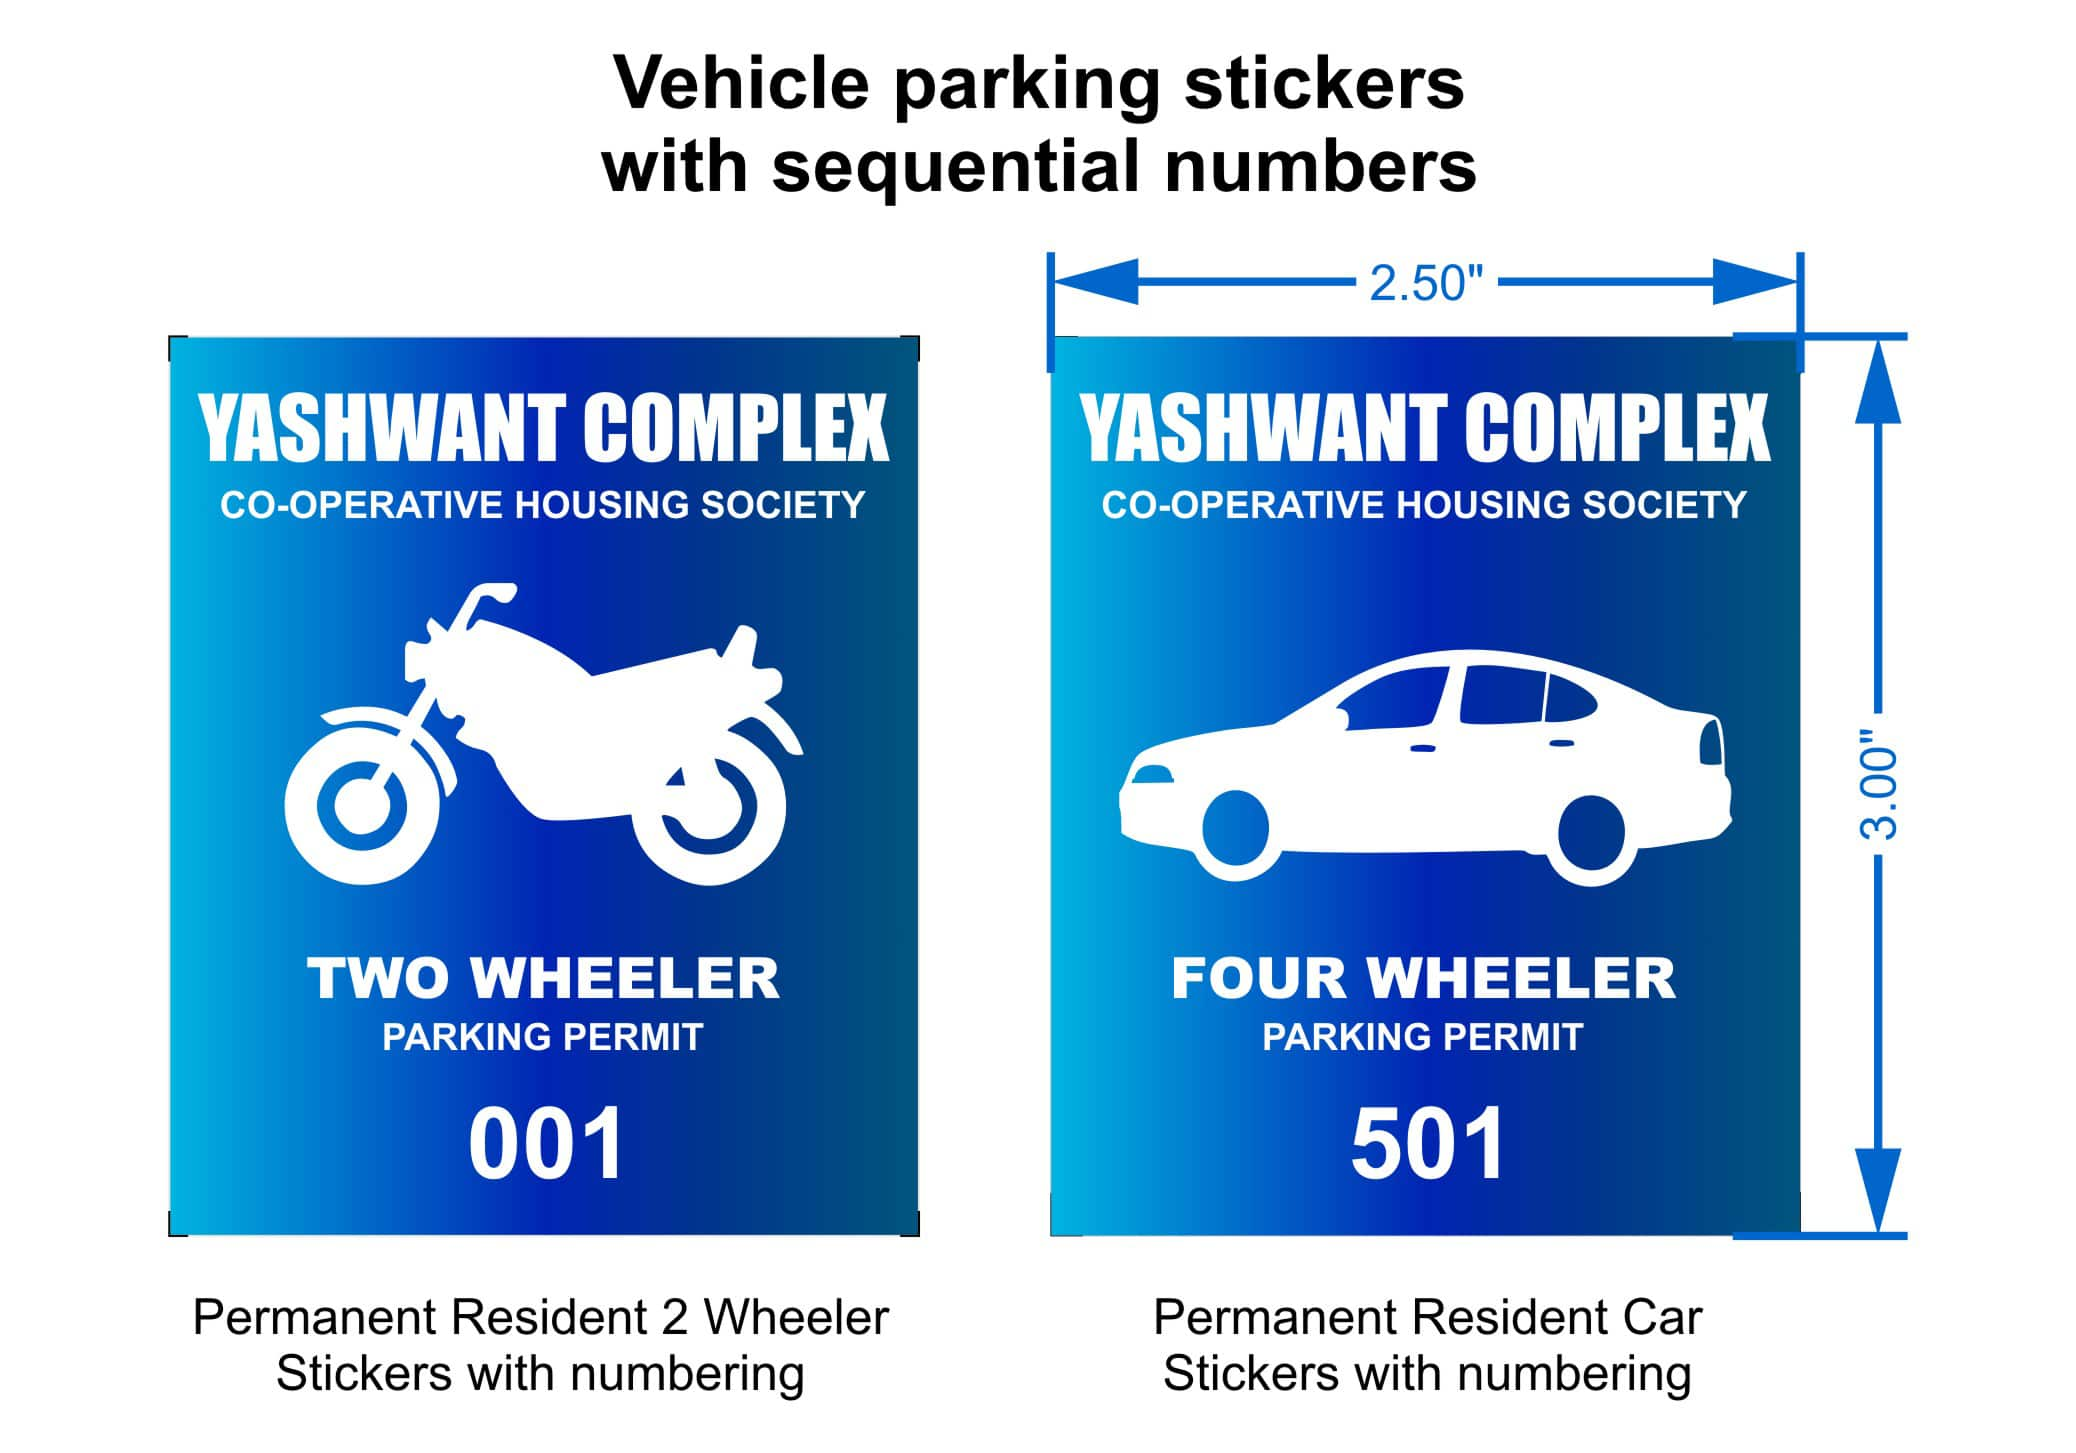 Parking permit stickers for two wheelers and four wheelers with sequential numbers